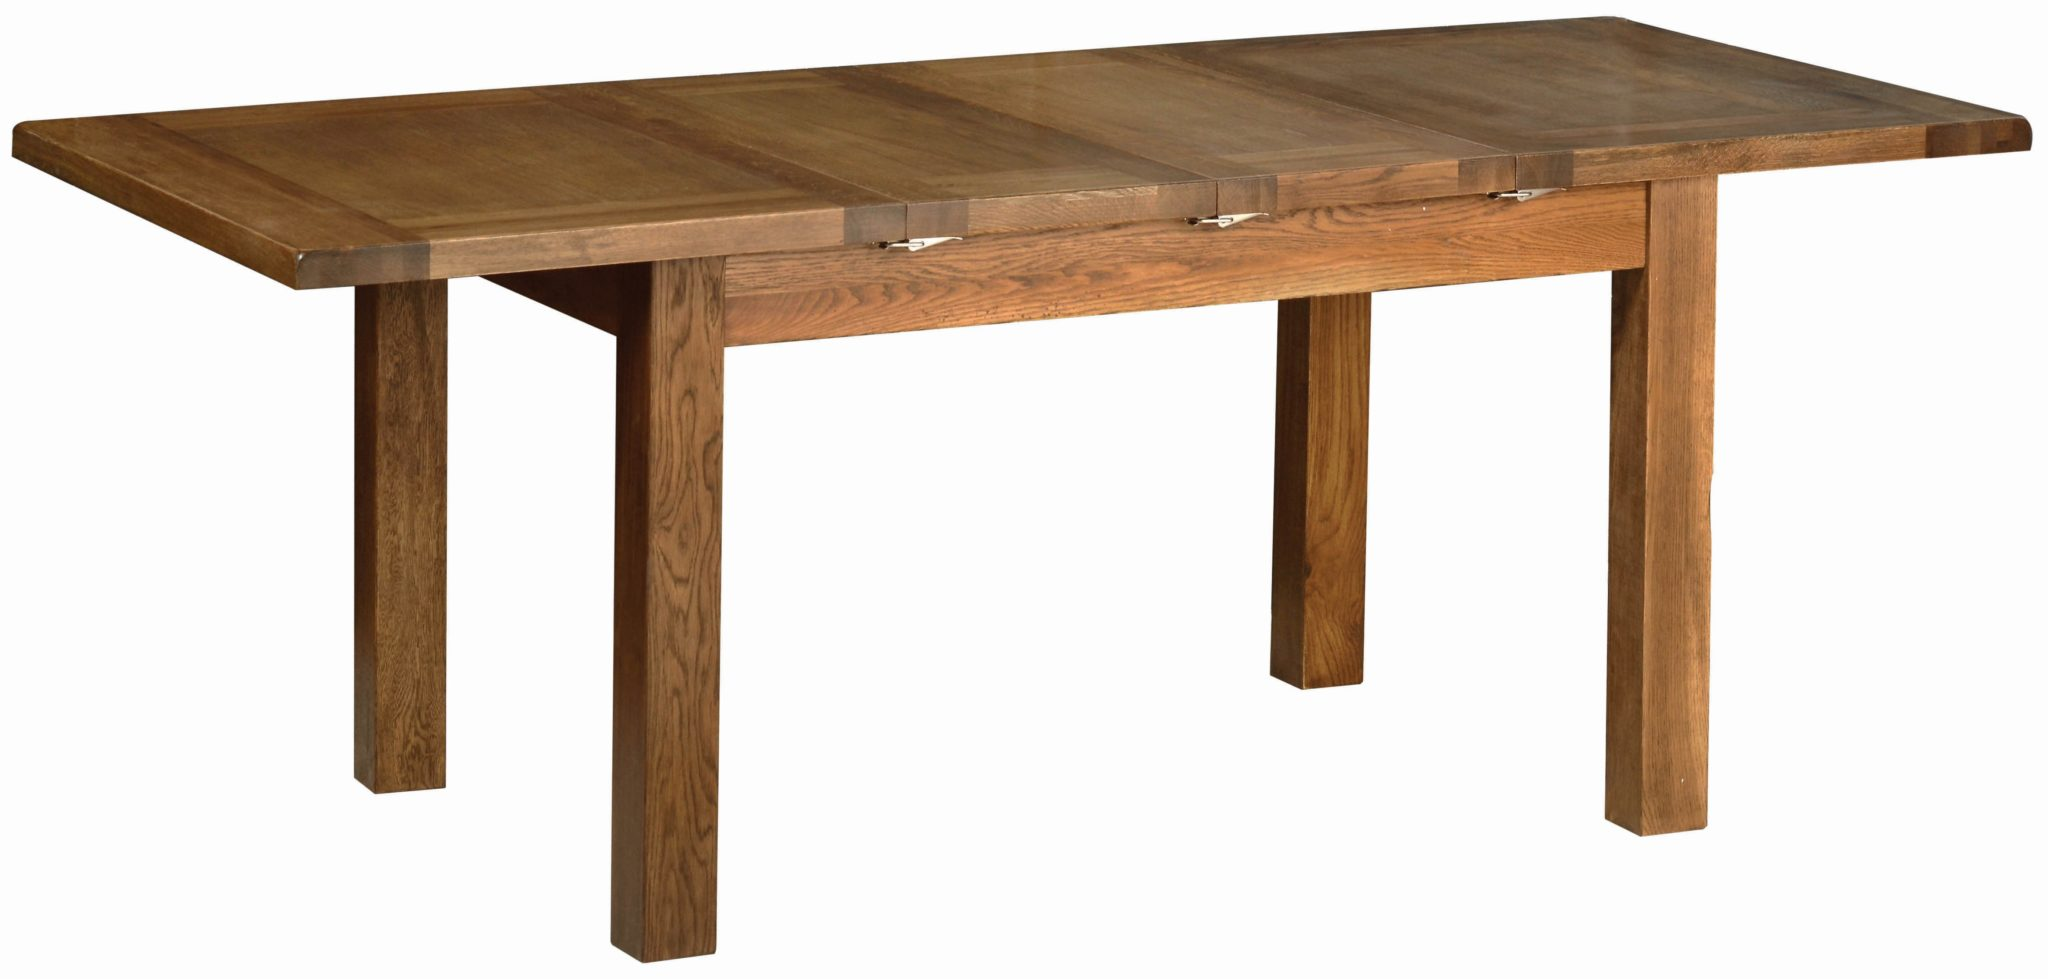 Sudbury Oak 4'4 x 3' Ext Table. Image showing open and un-extended. Extends from 132 to 203. Seats 6. Rustic shaker style with rounded edges. SRT07